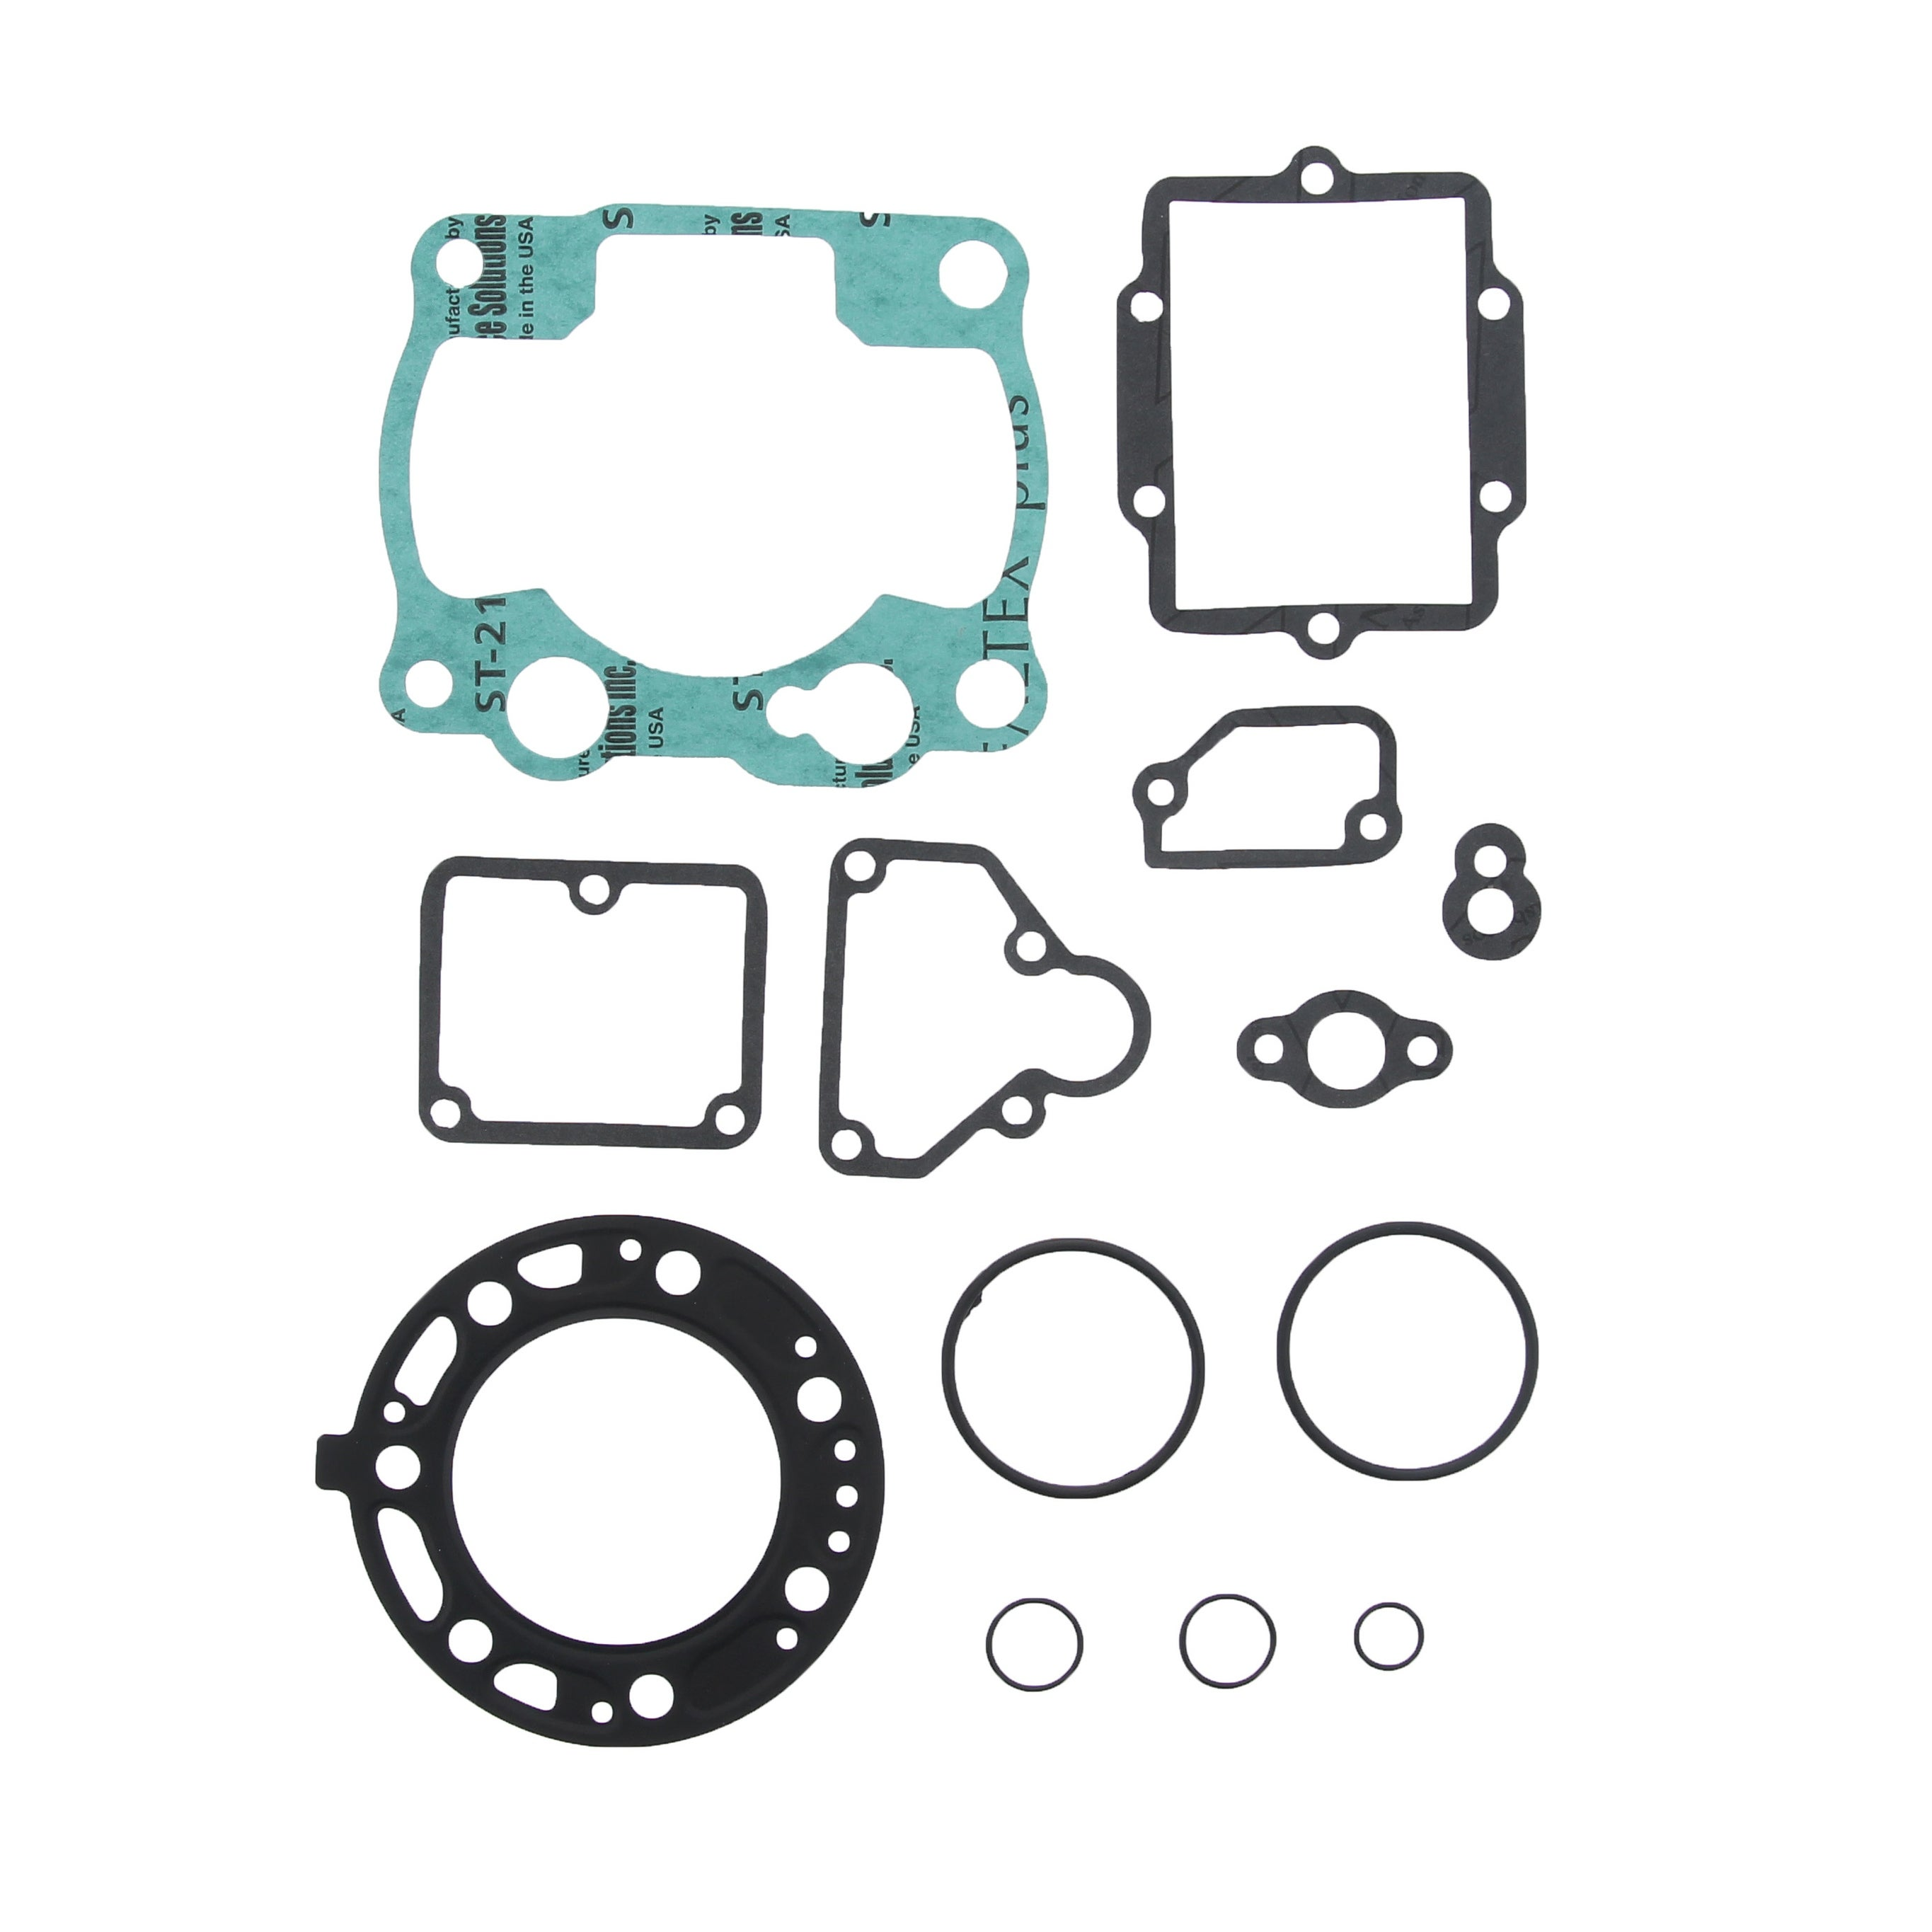 Top End Head Gasket Kit Fits Kawasaki Kx250 Kx 250 2003 By Race Wiring Harness Driven Free Shipping On Orders Over 45 Overstock 27629263